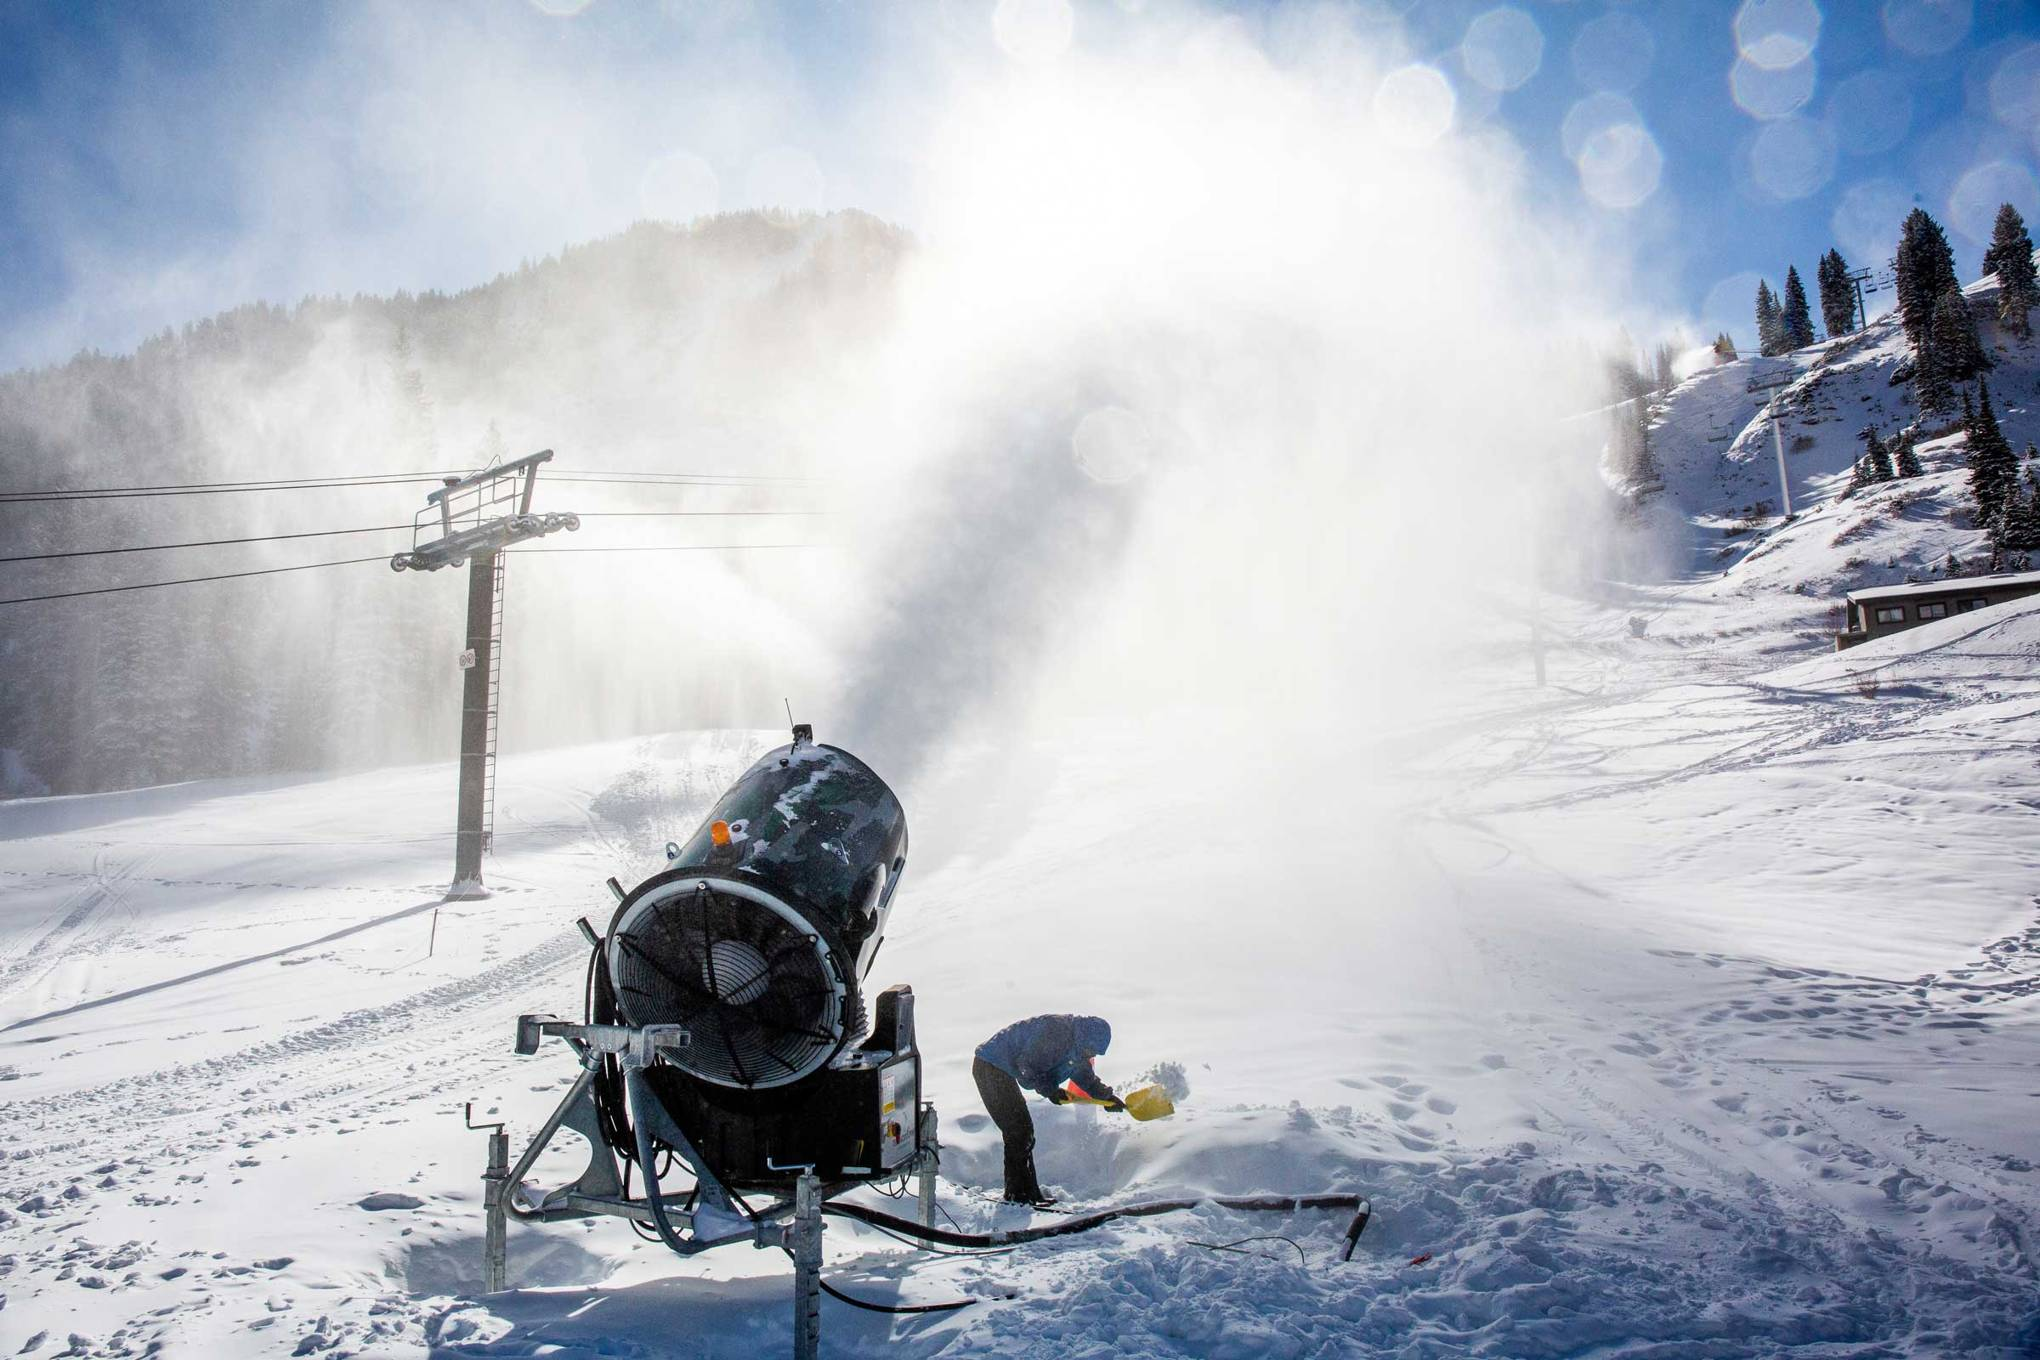 Melting ski resorts are developing a fatal addiction to snow machines